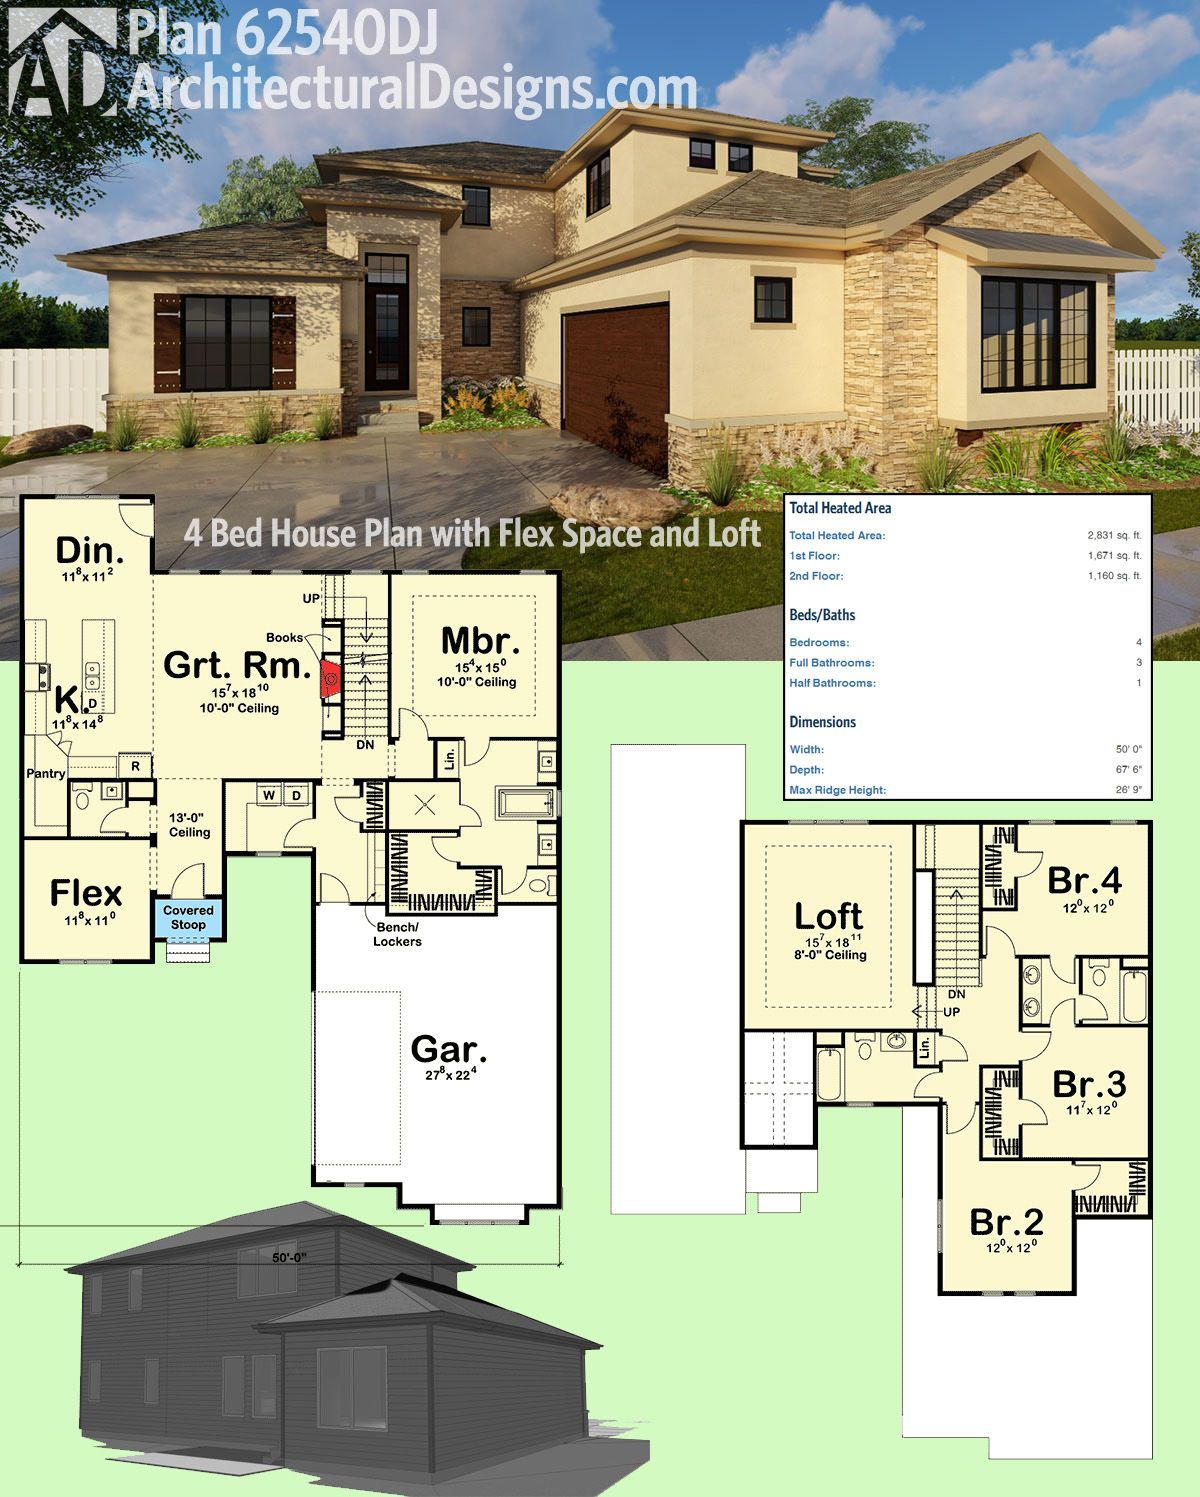 Plan 62540DJ: 4 Bed House Plan With Flex Space And Loft